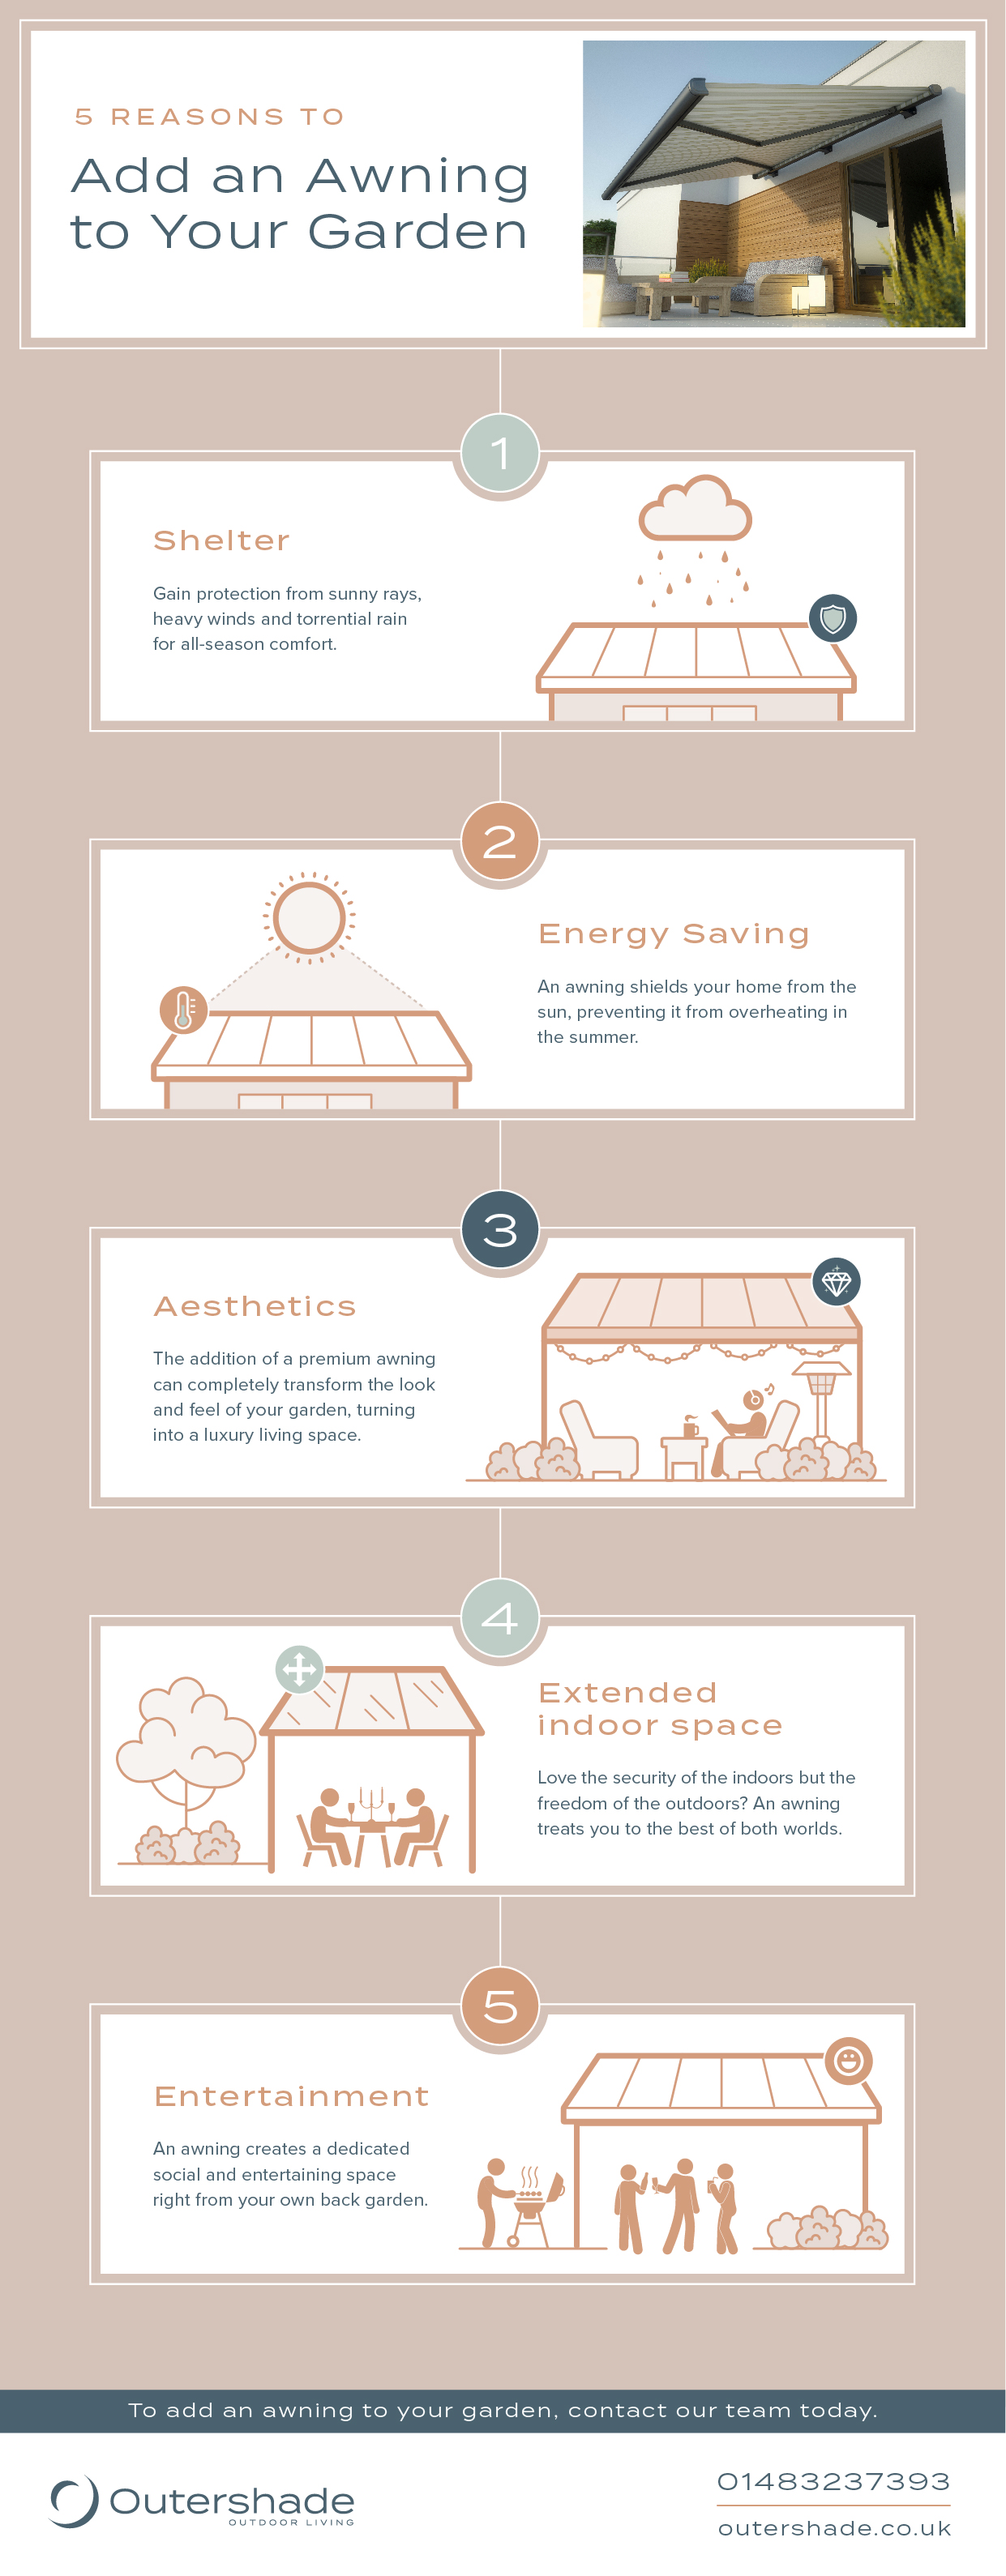 5 reasons to add an awning infographic